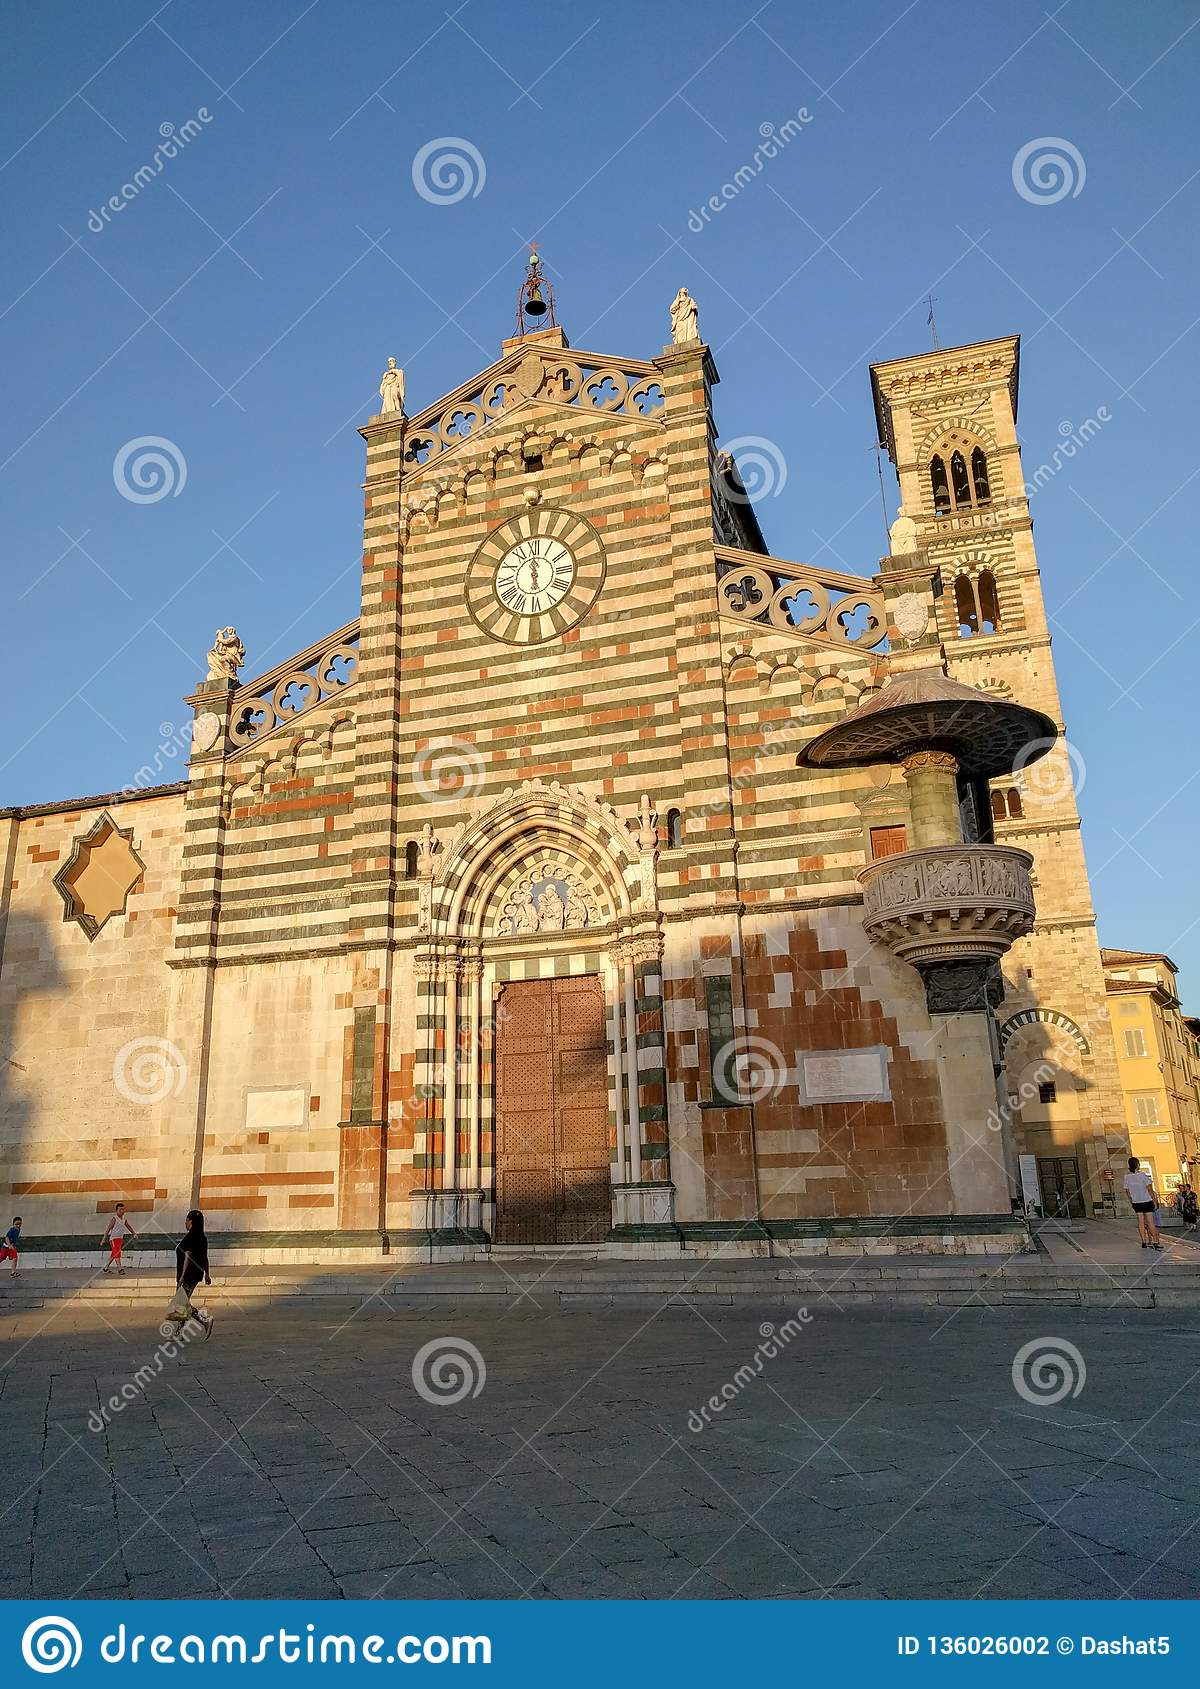 Saint Stephen`s Cathedral or Duomo di Prato at sunset light, Tuscany, Italy